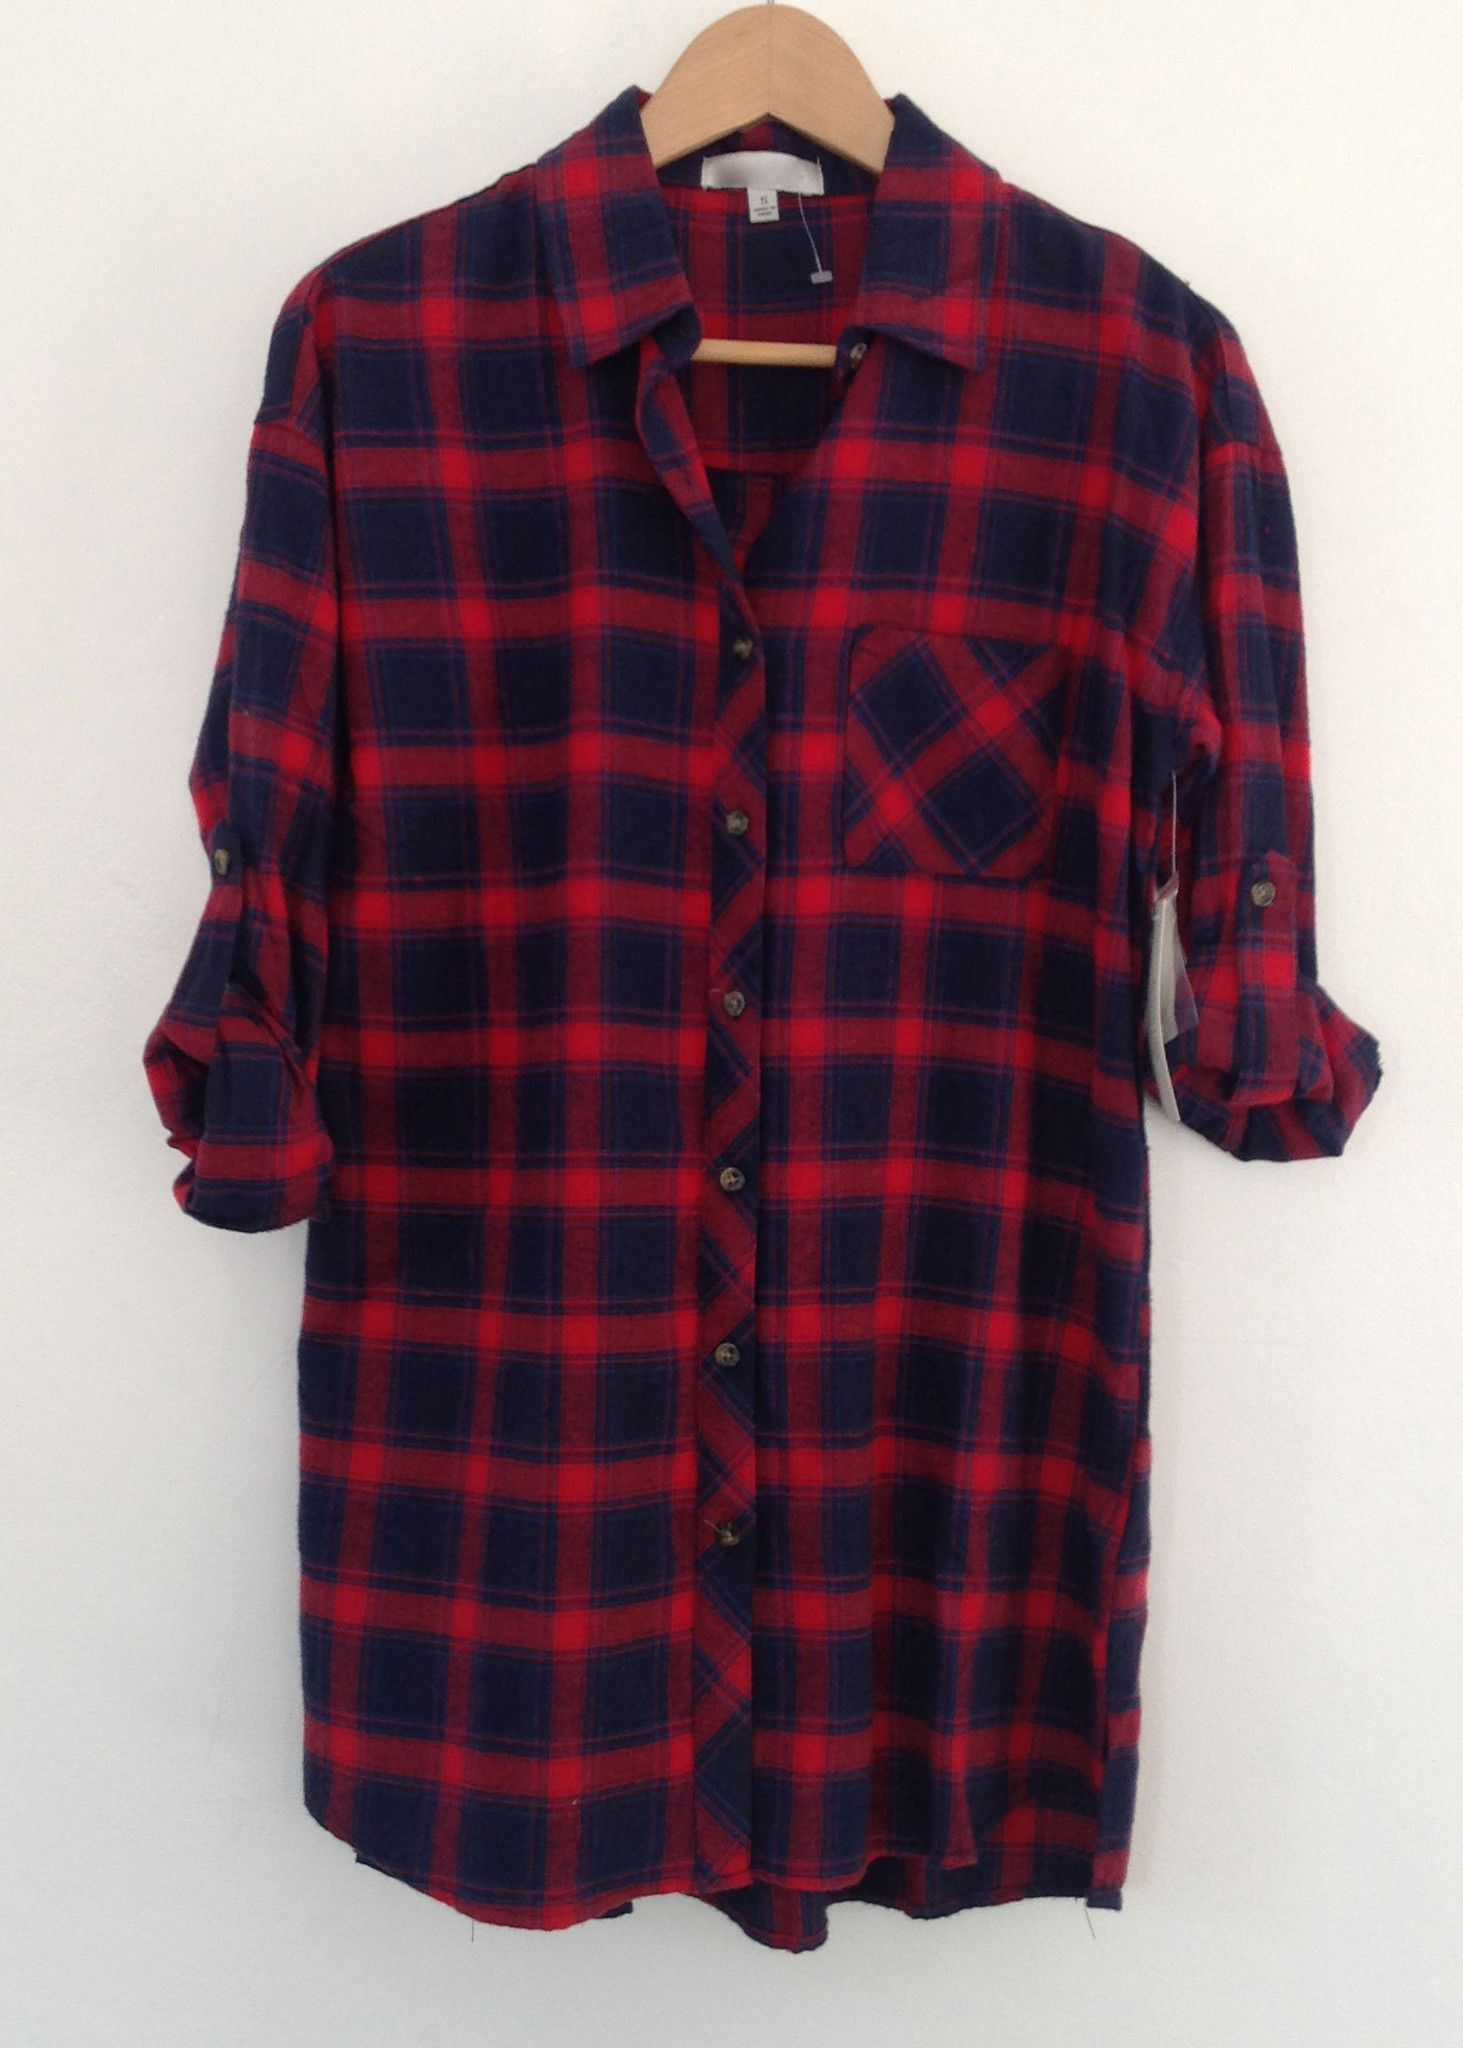 Flannel over shirt  jenny oversized flannel  clothes  Pinterest  Oversized flannel